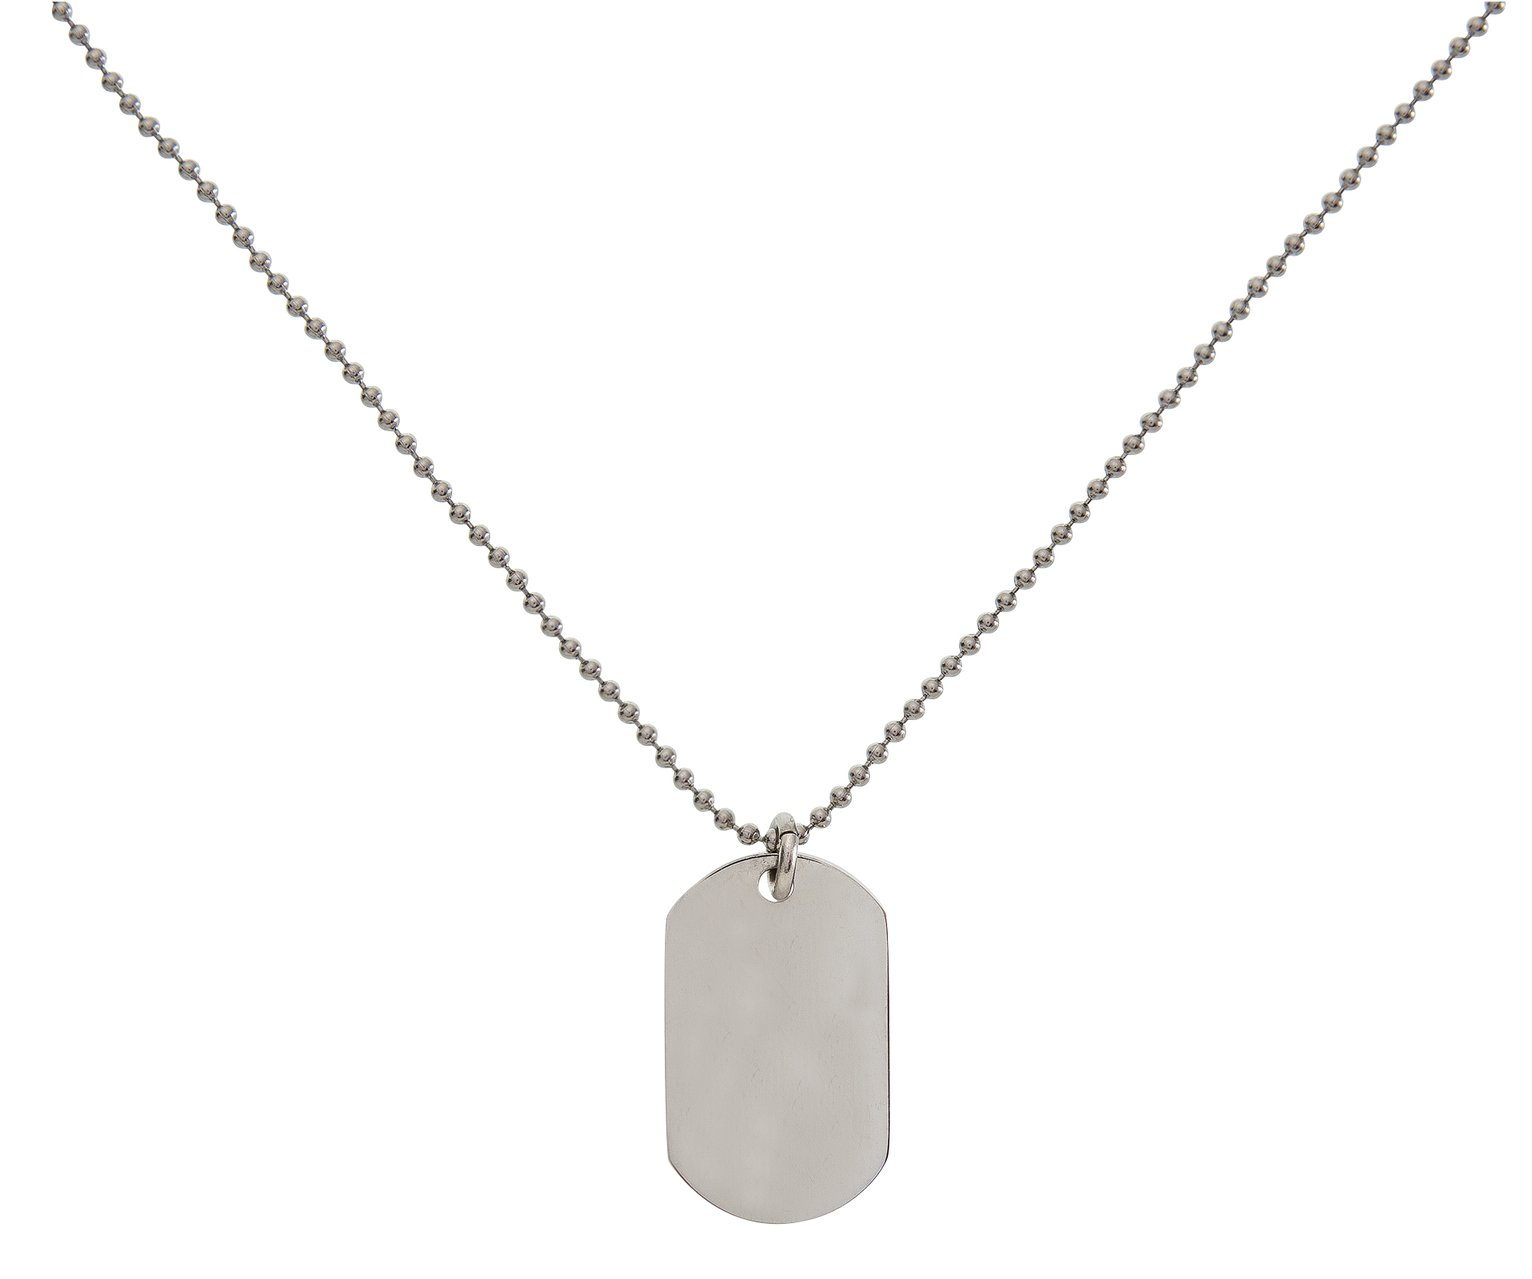 Image of Revere Kid's Stainless Steel Dog Tag Pendant